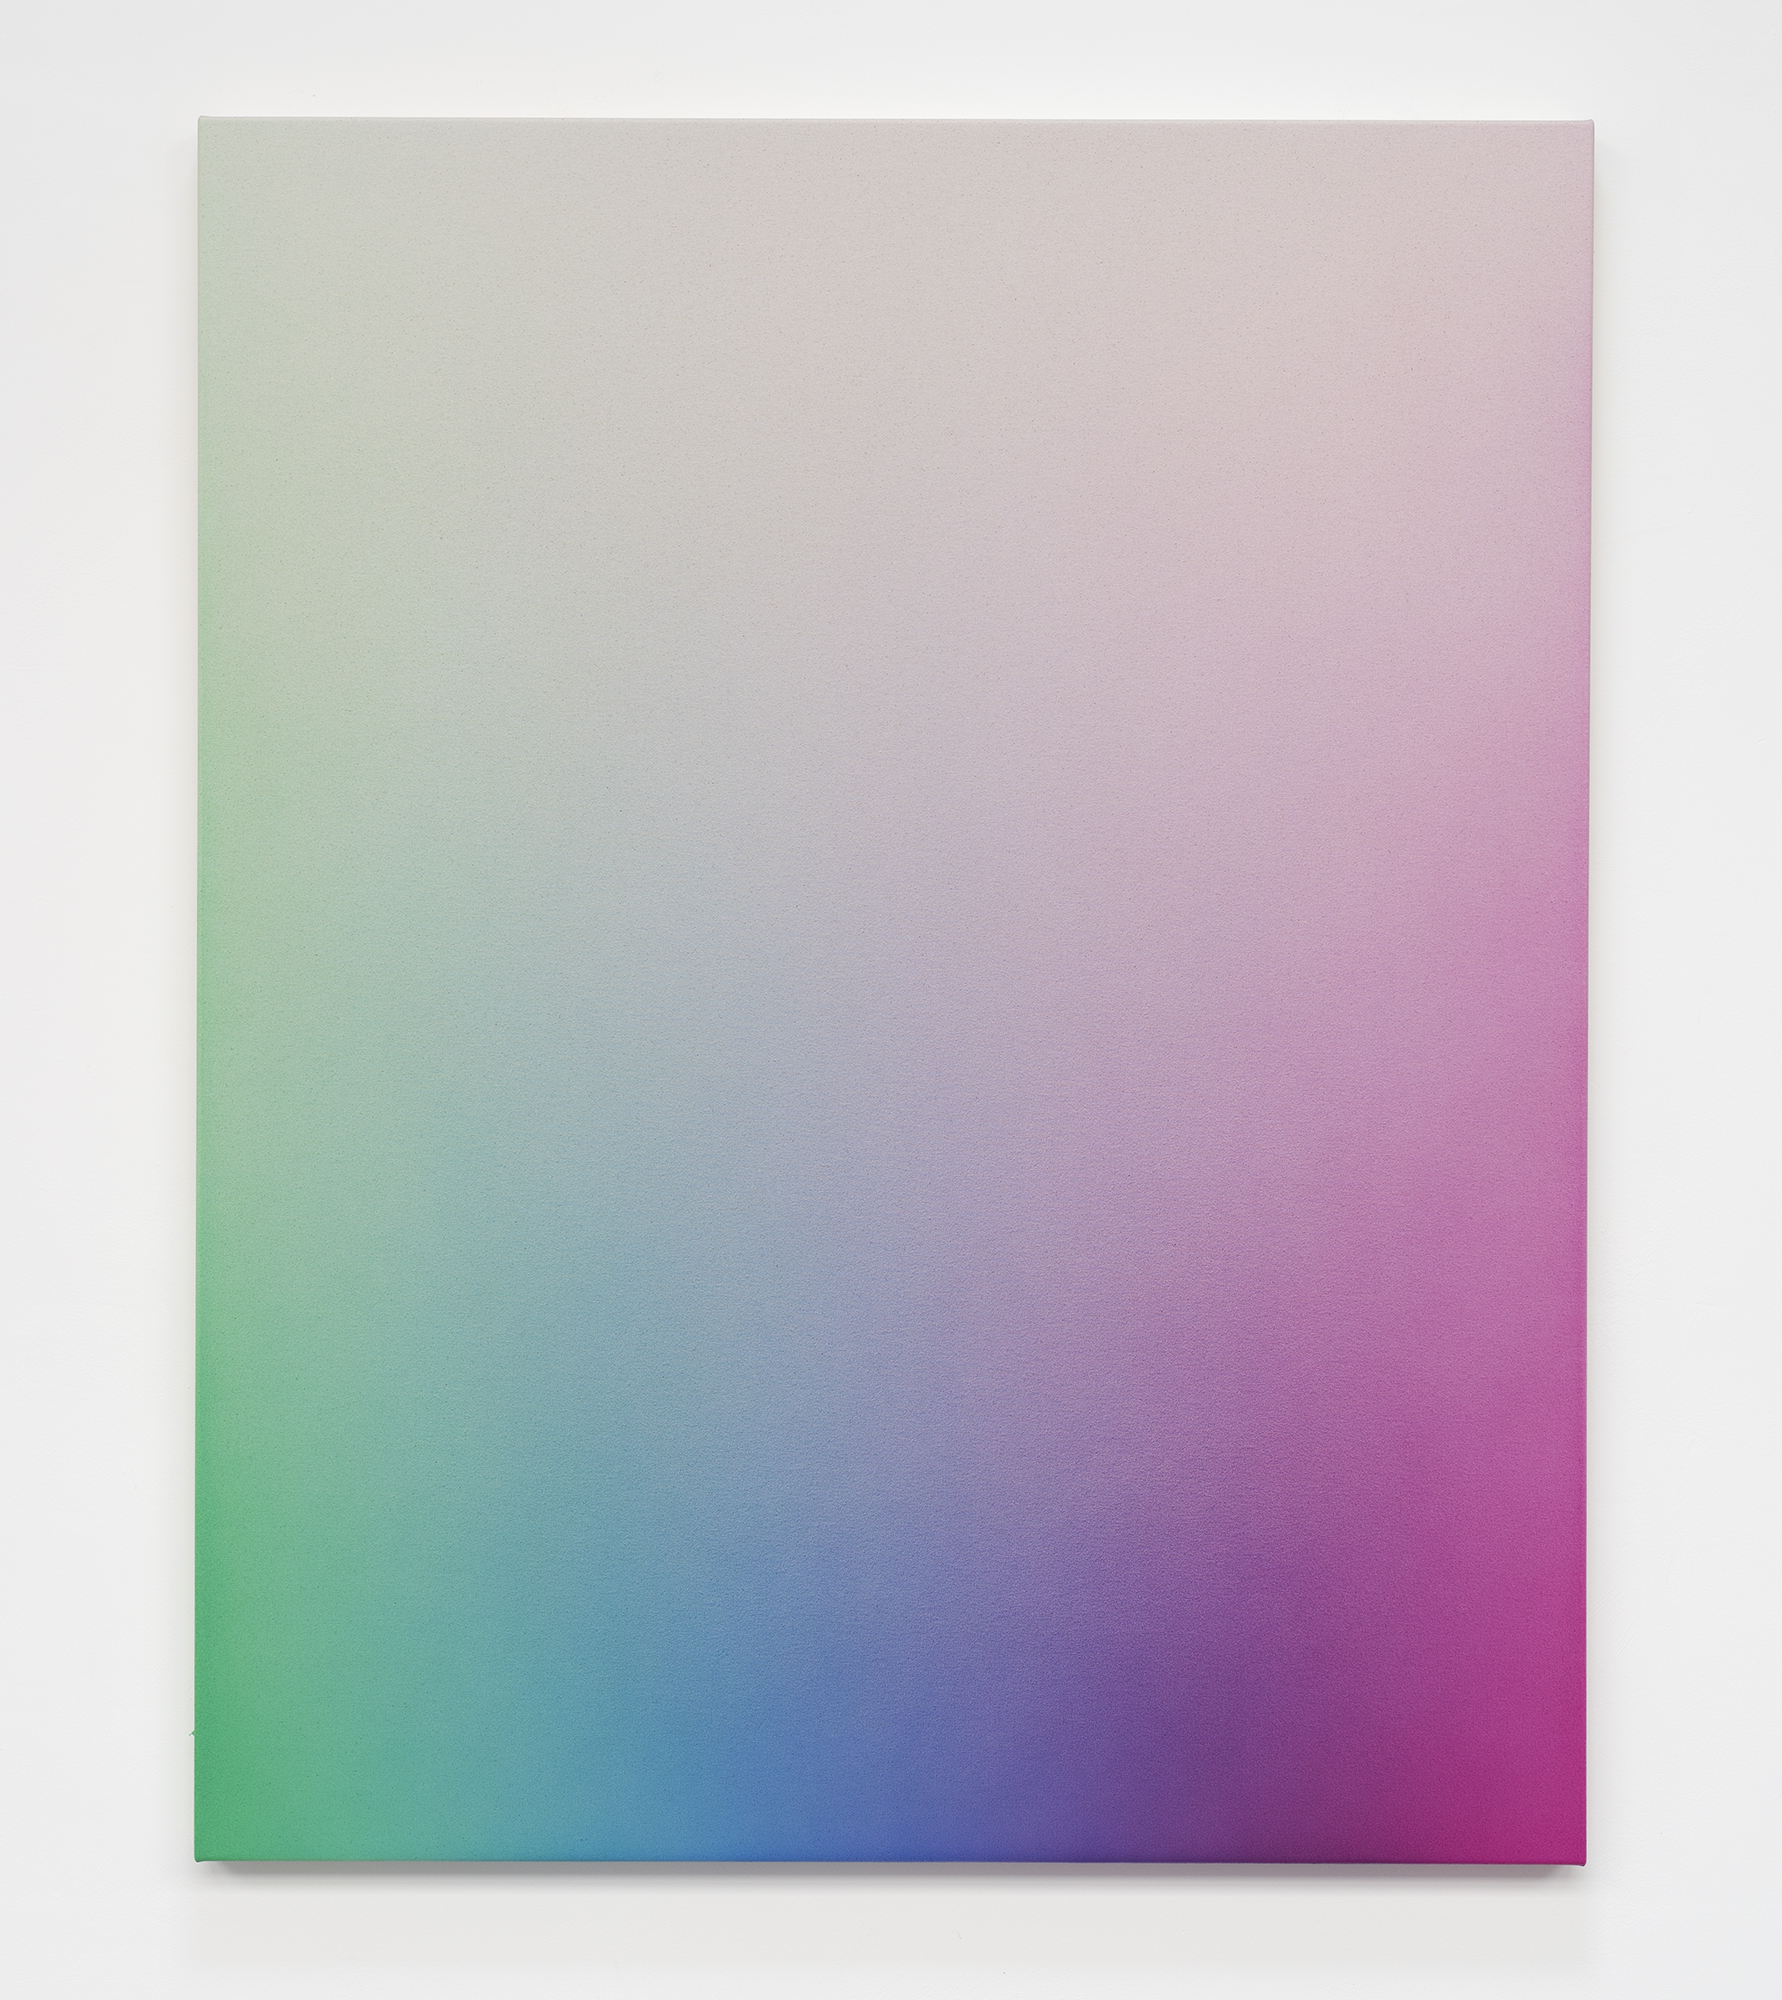 "<p><span class=""name"">Oliver Marsden</span><br><em>Spectrum Fade GCBVM II (light)</em><span class='media'>Acrylic on canvas</span> 59.06 x 47.2in 